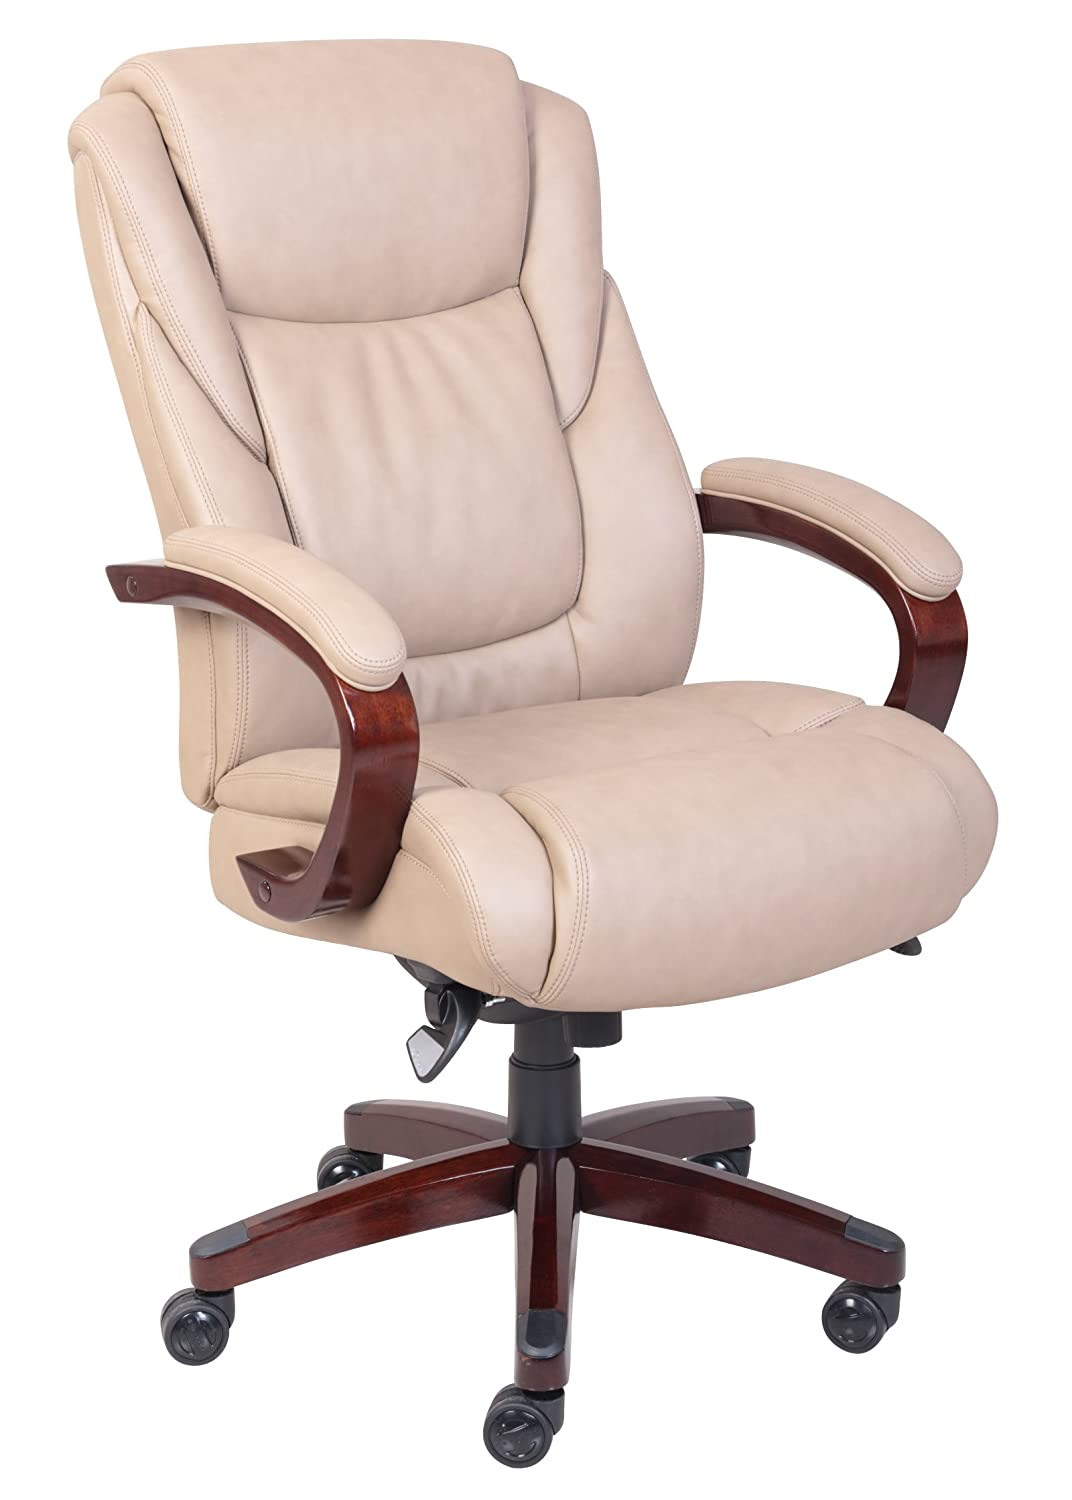 La-Z-Boy Bellamy Executive Bonded Leather Office Chair - Coffee (Brown) Millwork Holdings Co. Inc. 45783